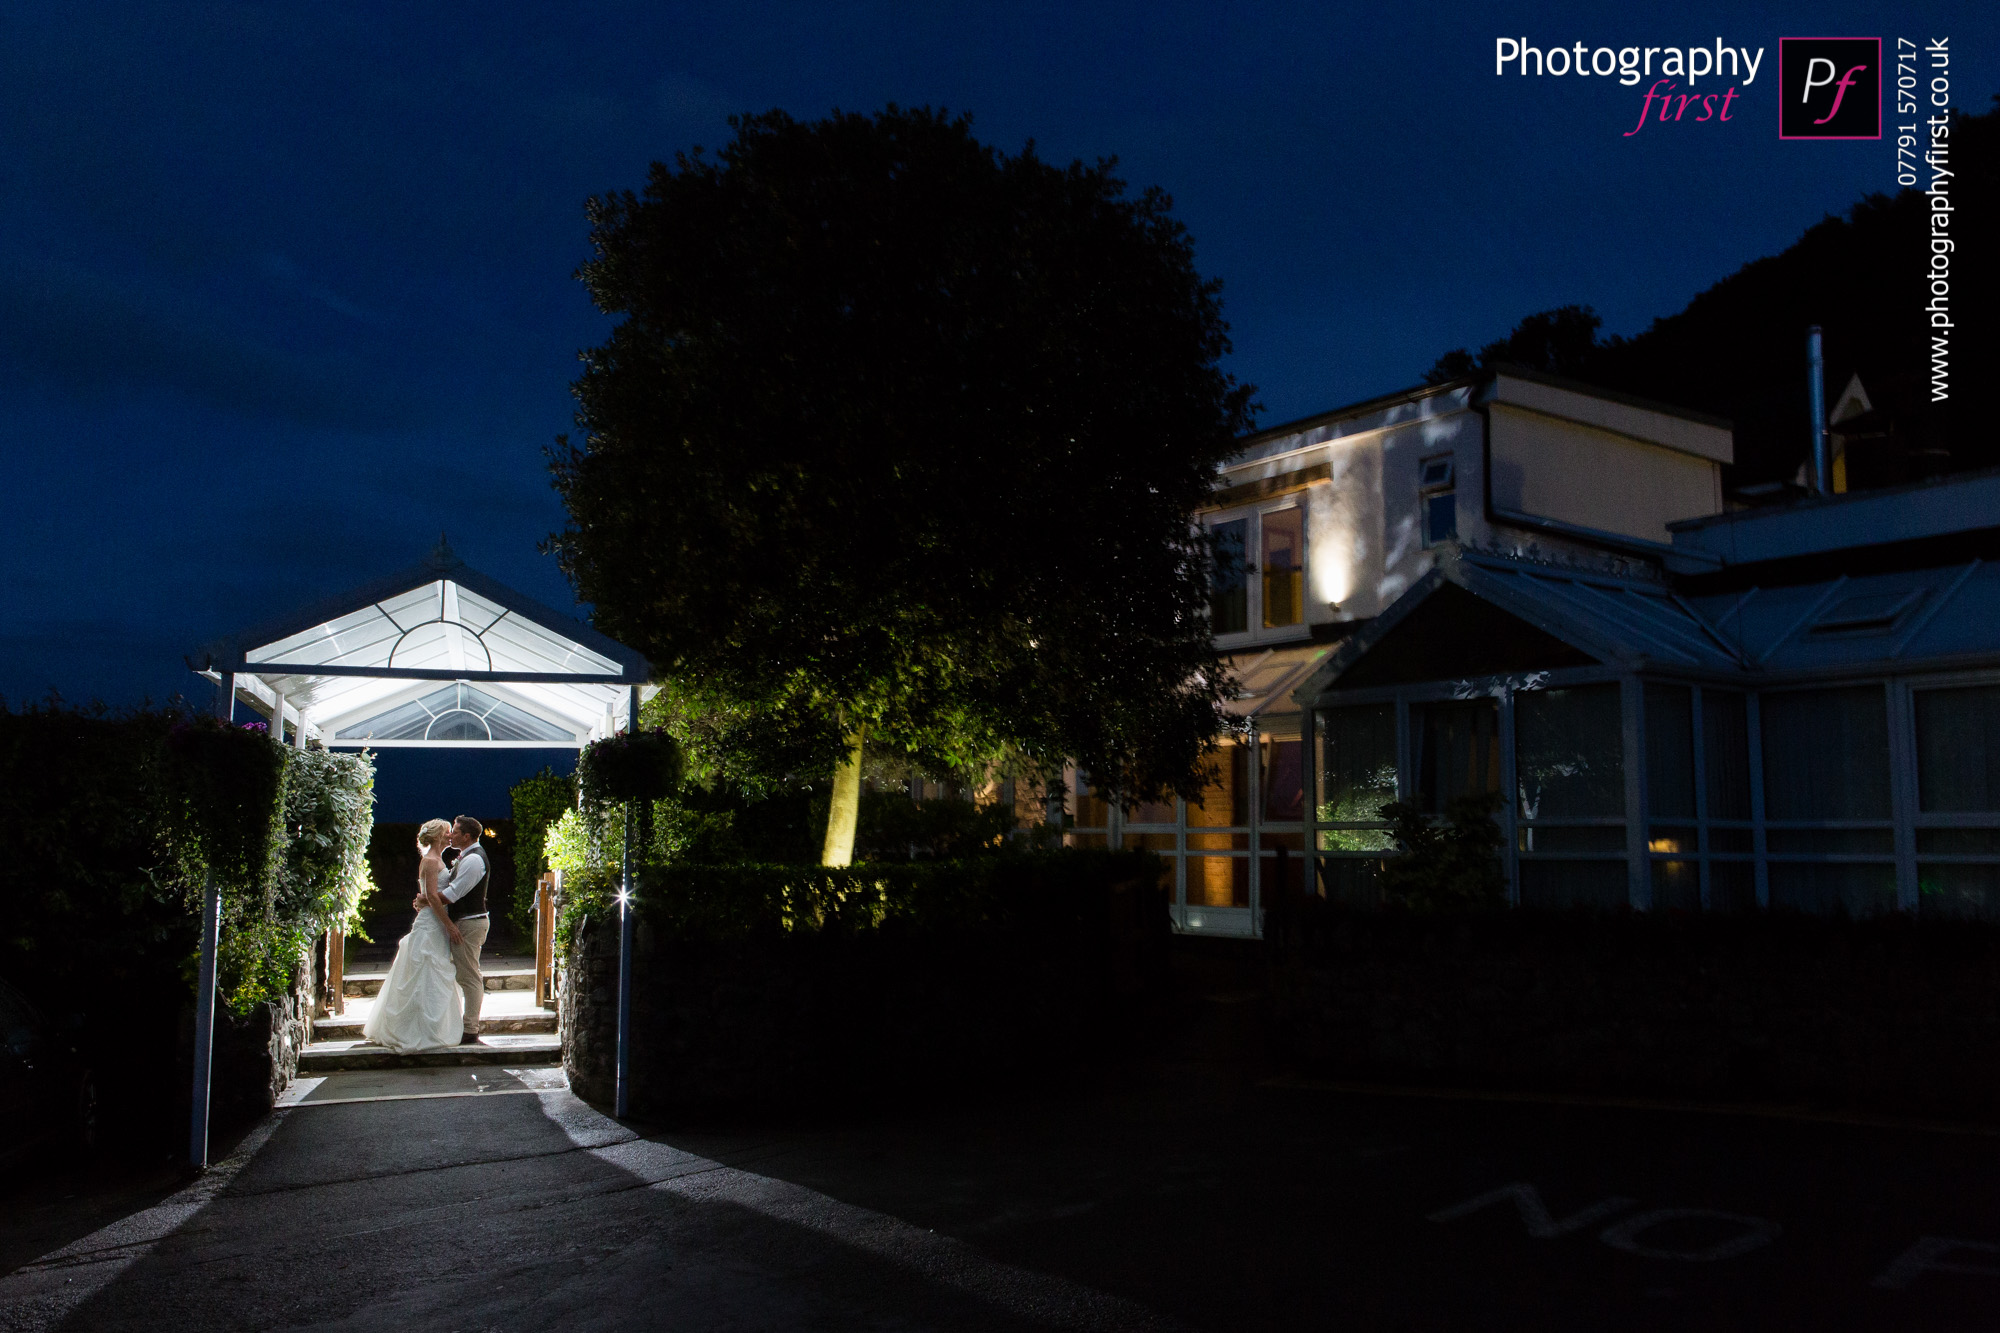 Wedding Photography South Wales (25)